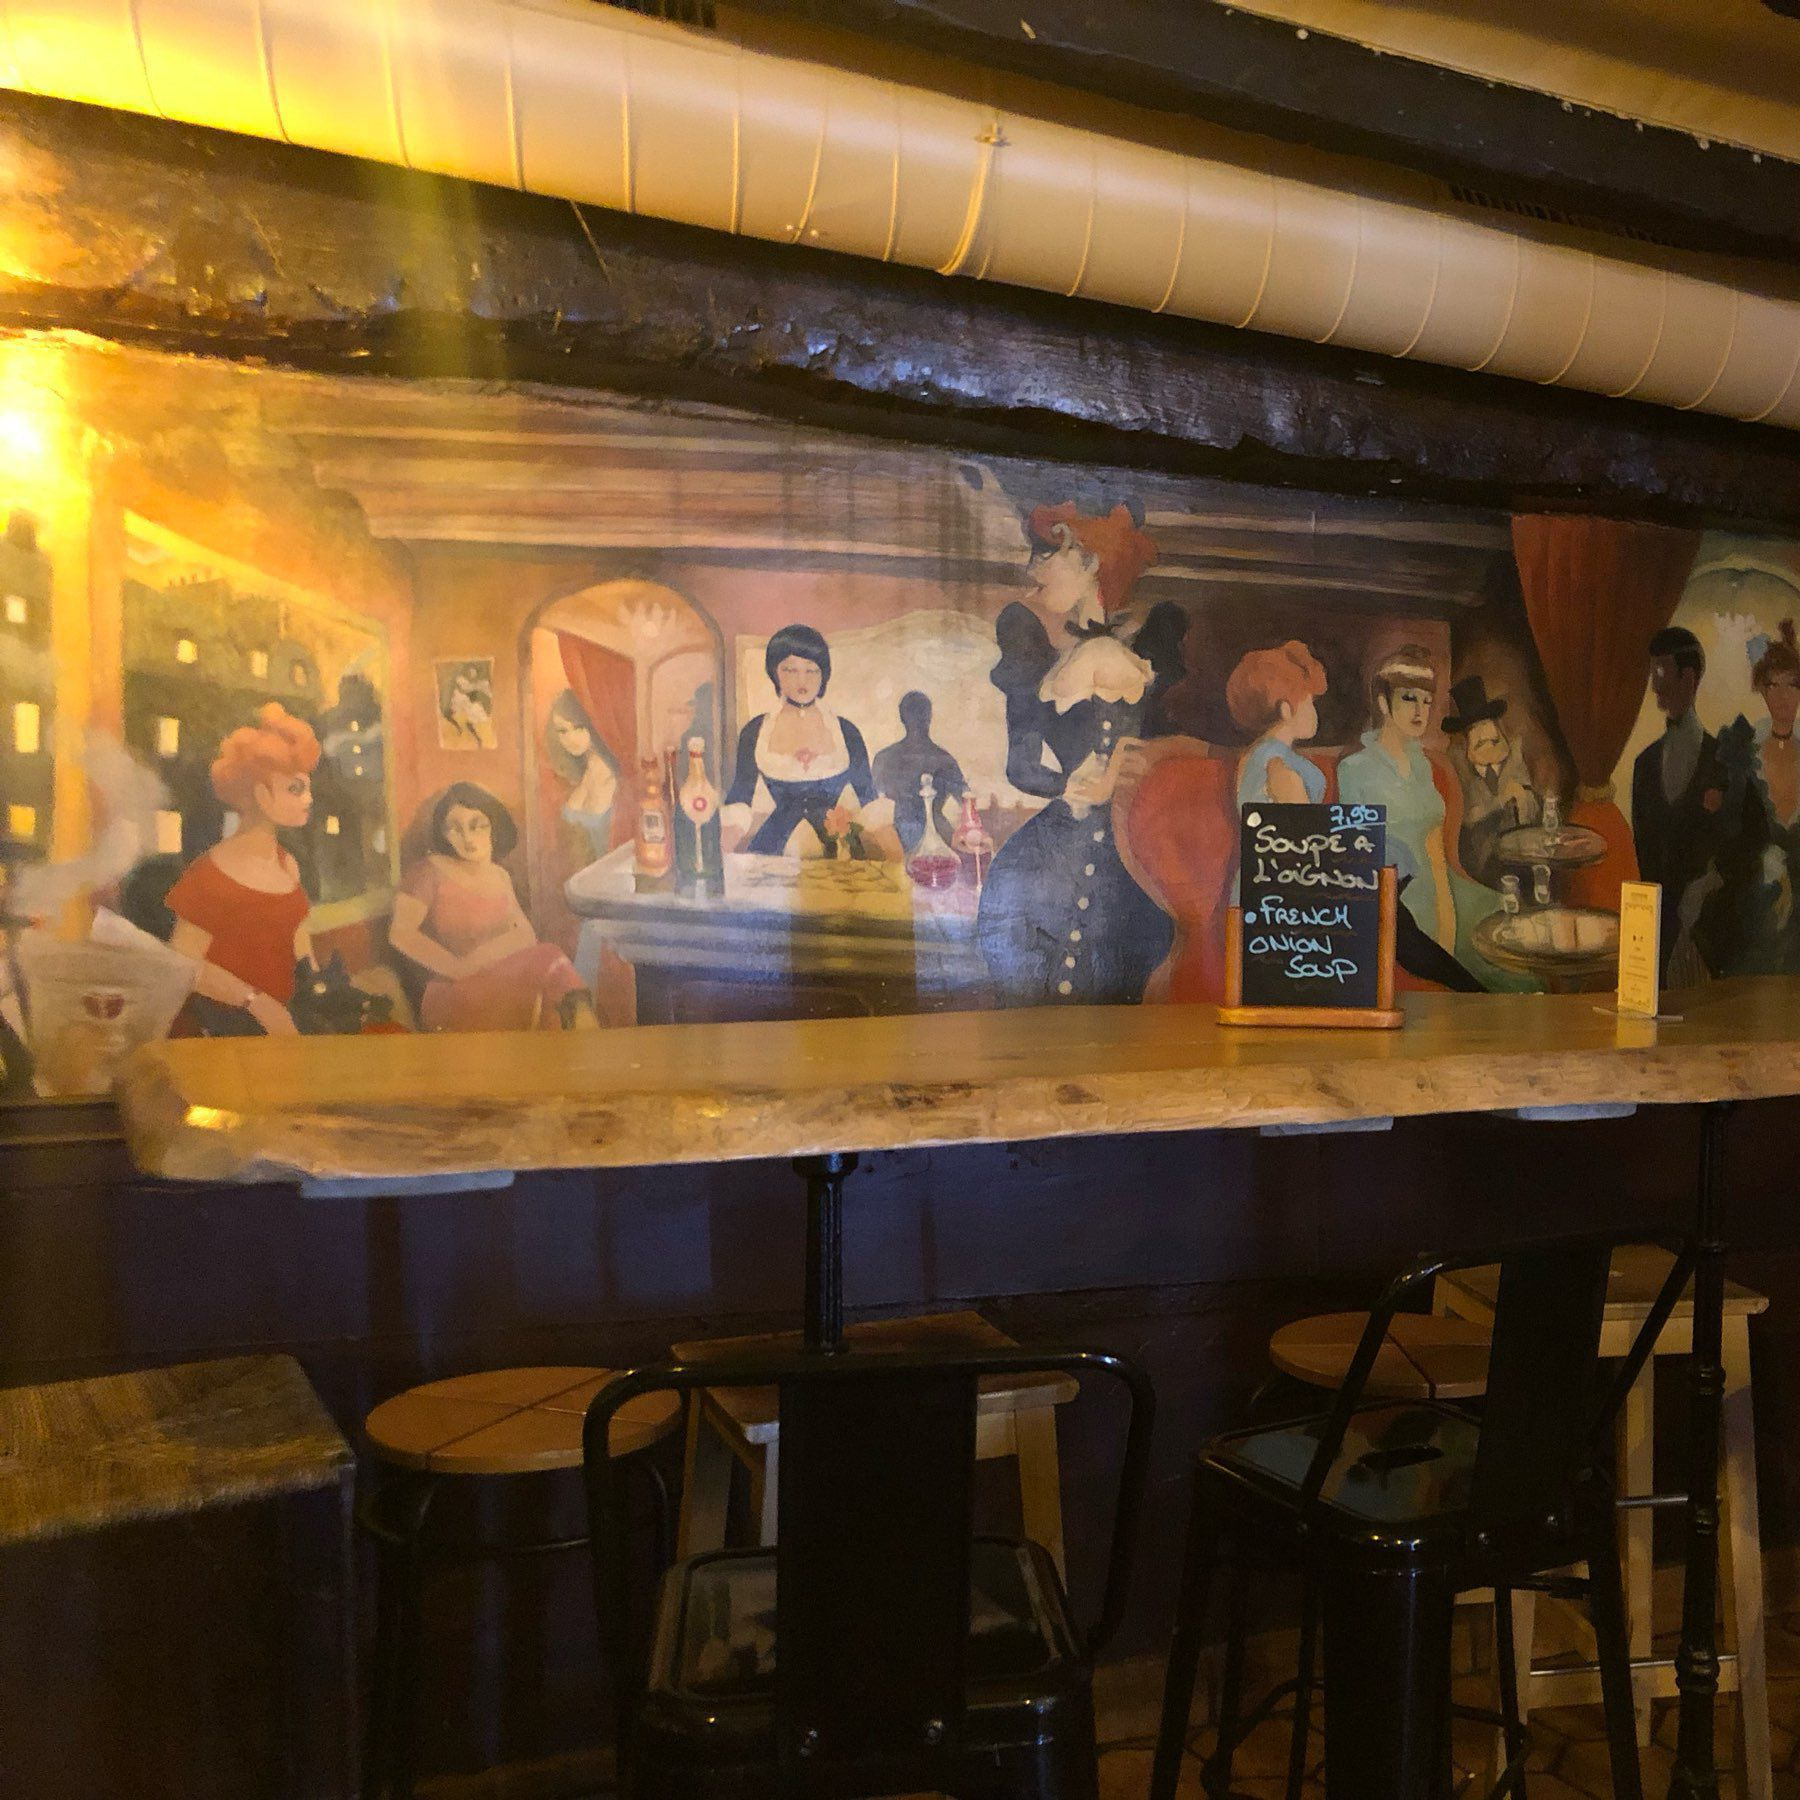 Interior picture of wall art depicting vintage French bar scene.